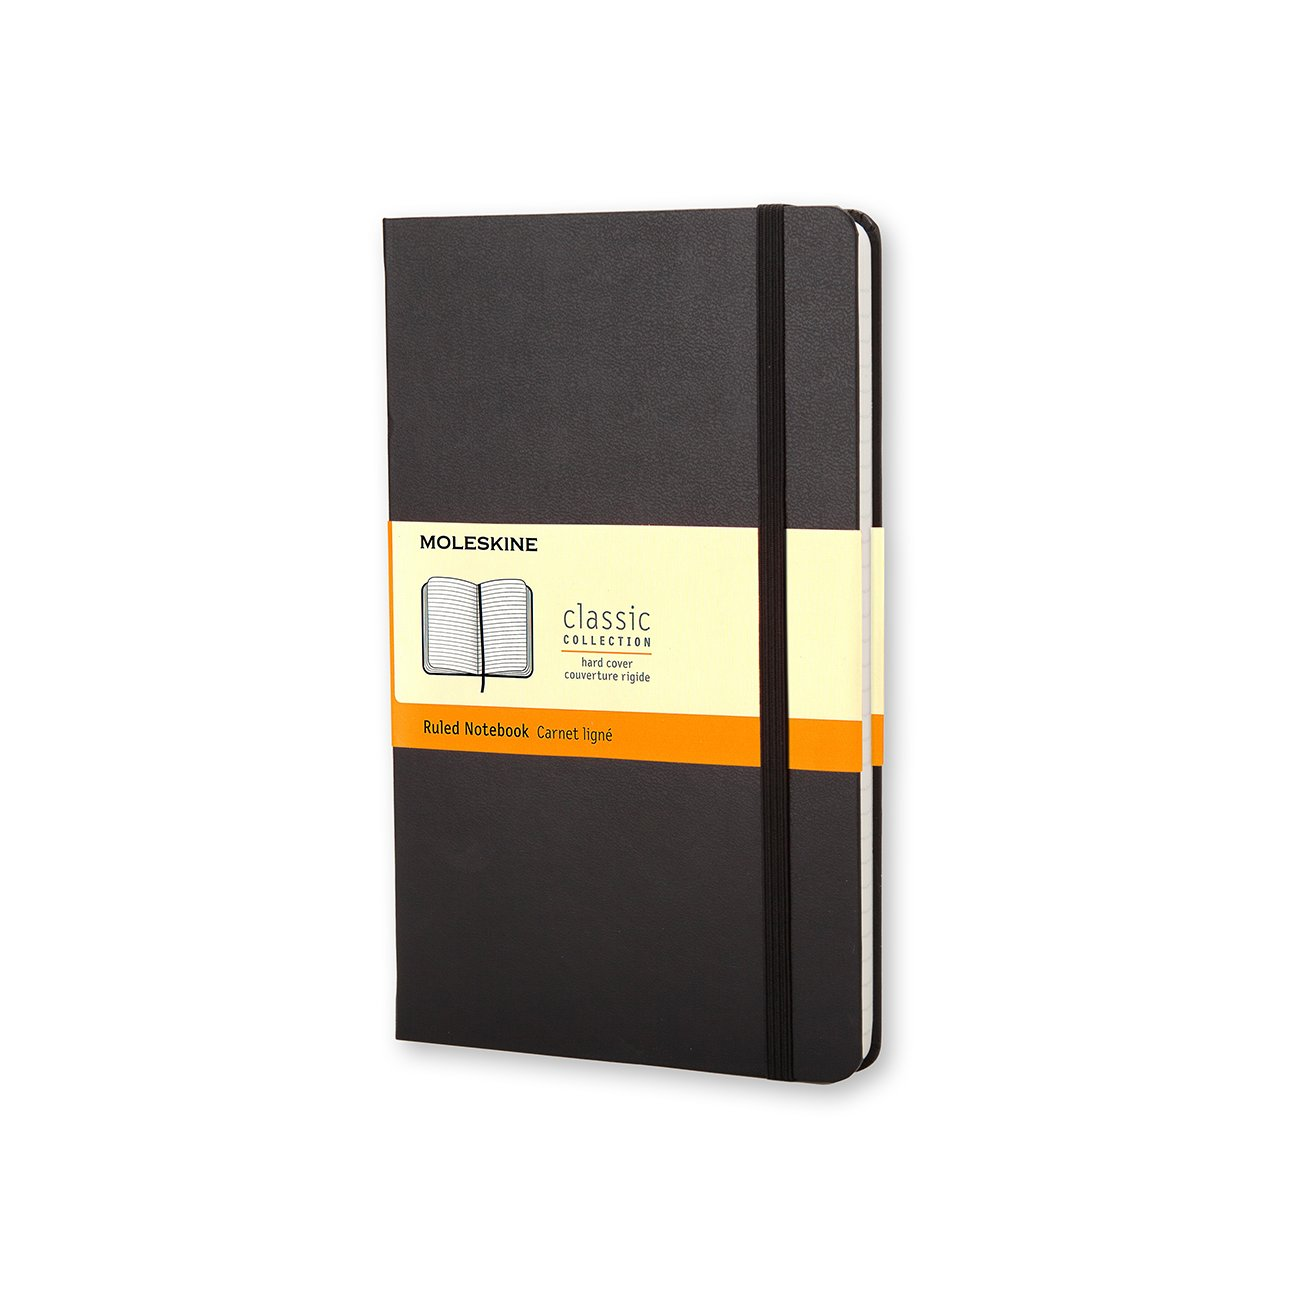 "Moleskine Classic Notebook - Large Hard Cover 5"" x 8 1/4"", Large Hard Cover, Black, Classic Moleskine Notebook, 96 Sheets, 1/EA"